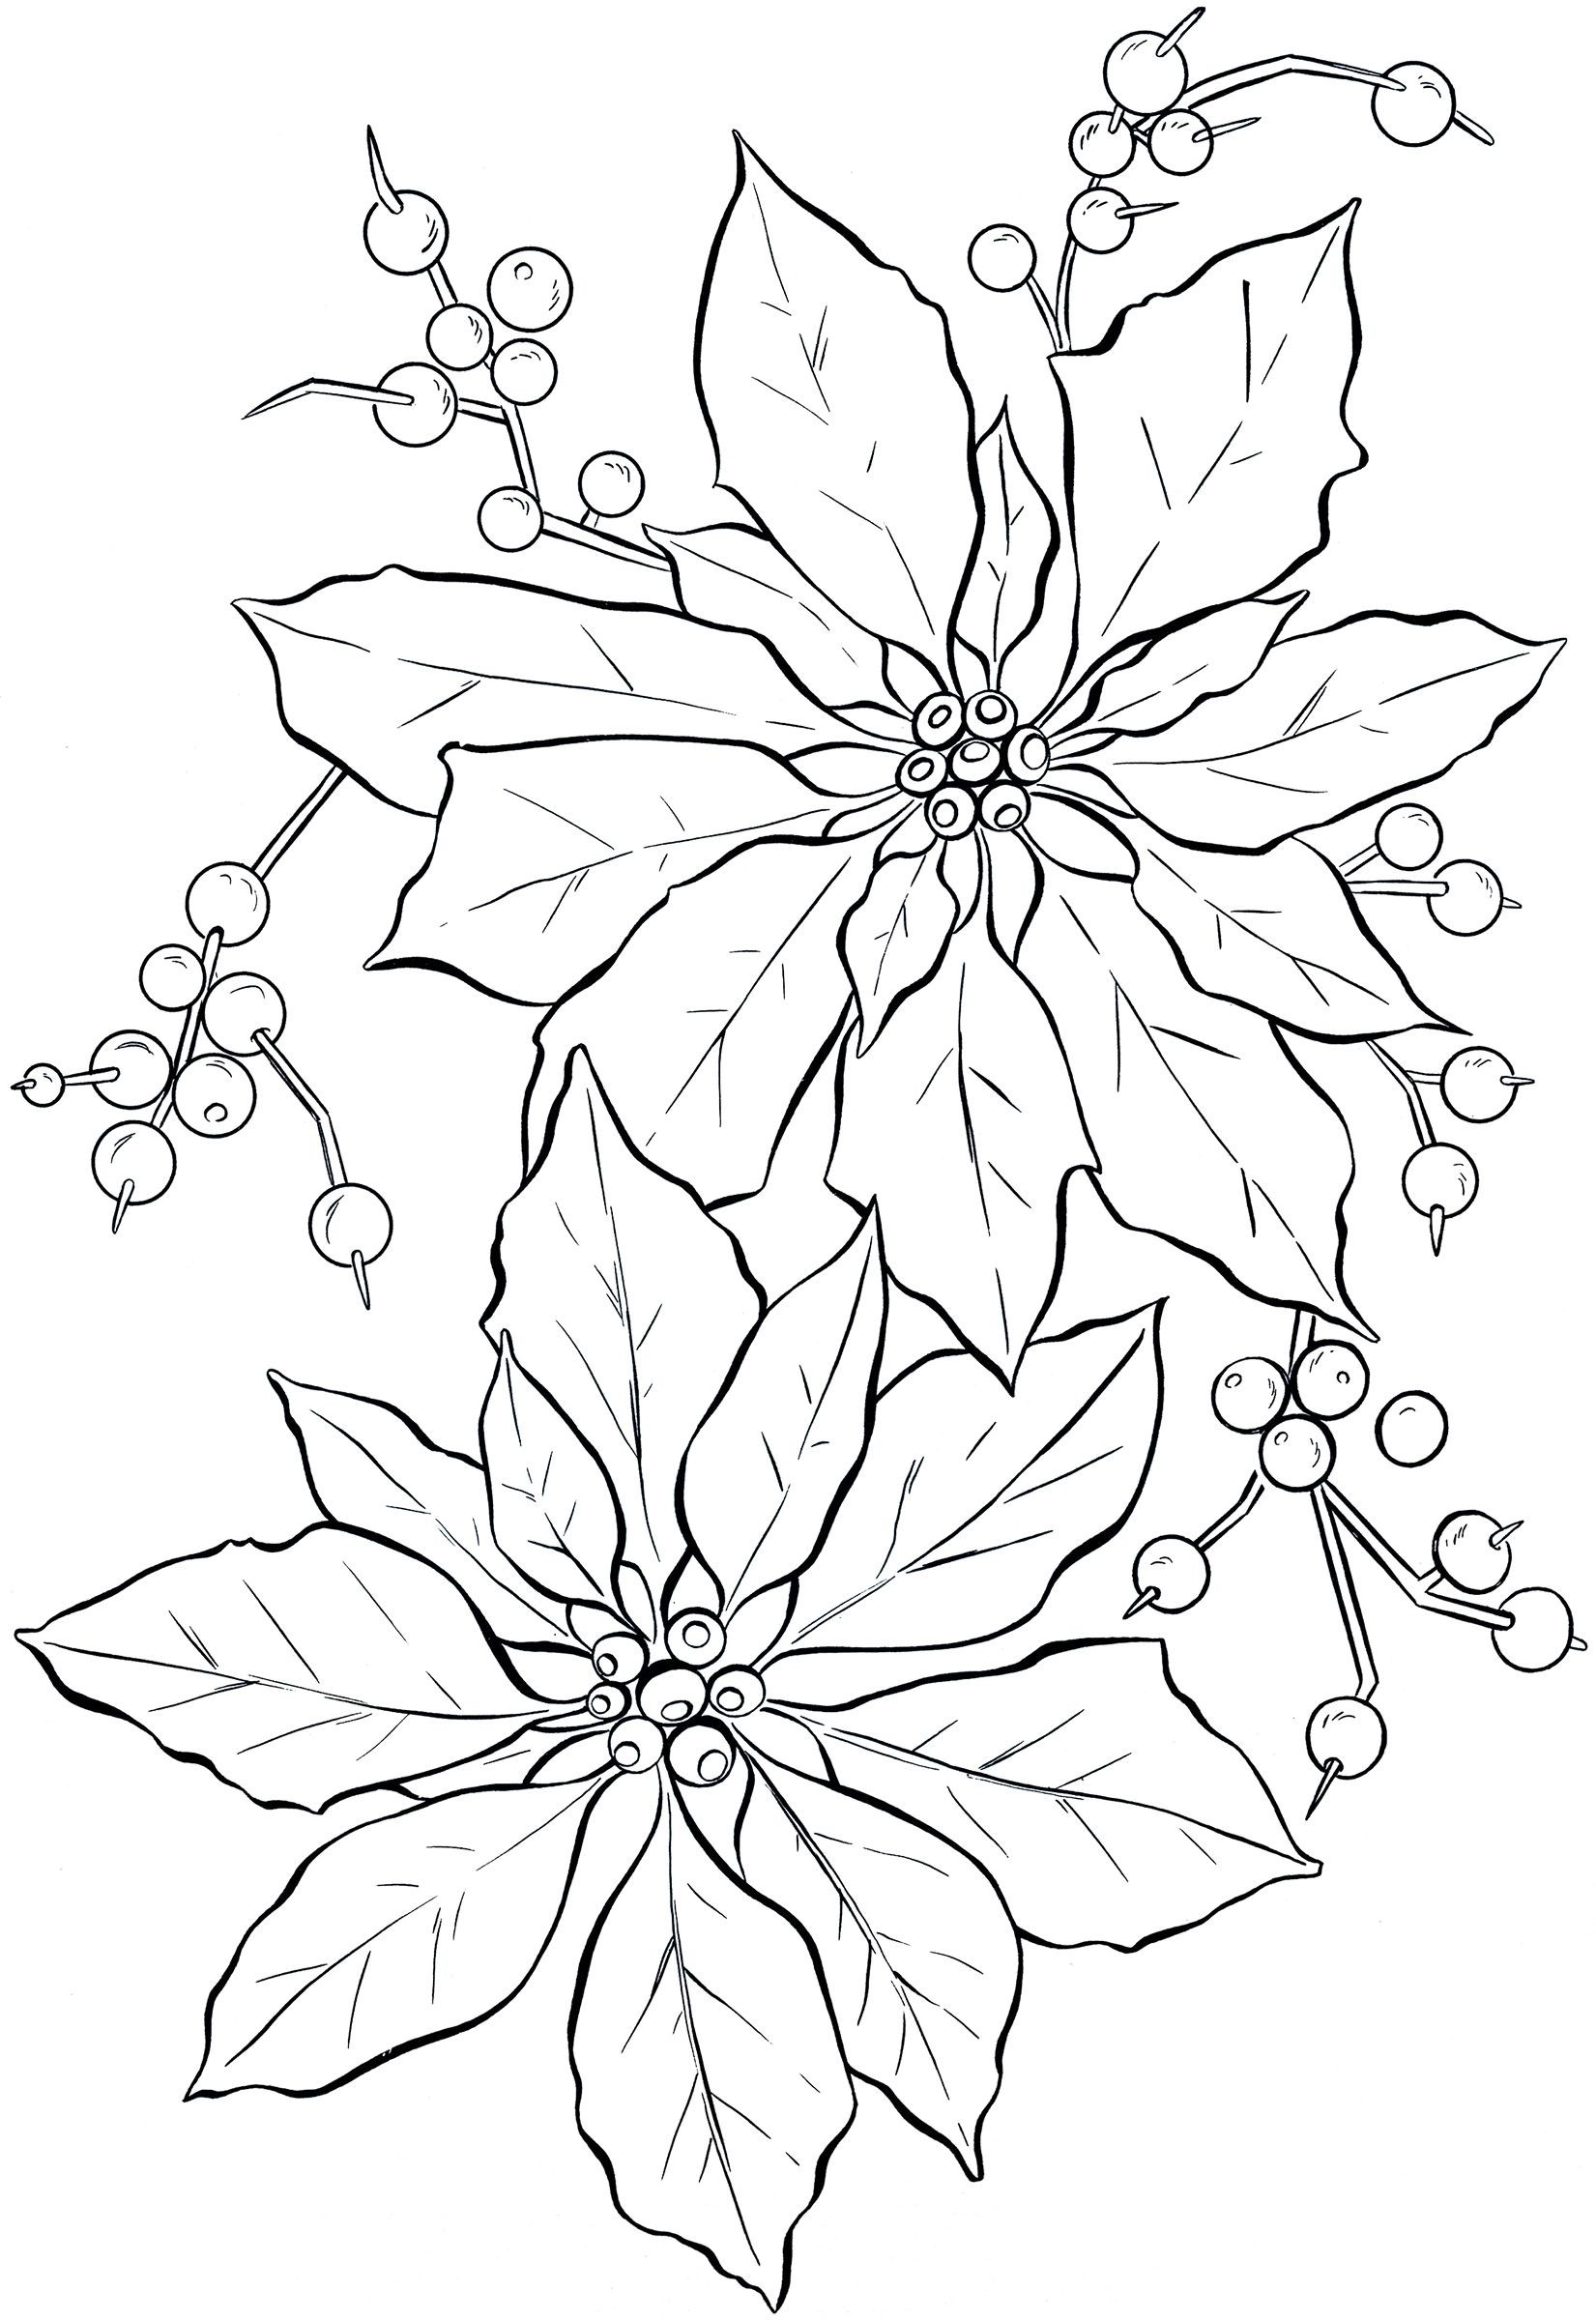 8 Poinsettia Clipart! | Christmas coloring pages, Coloring pages